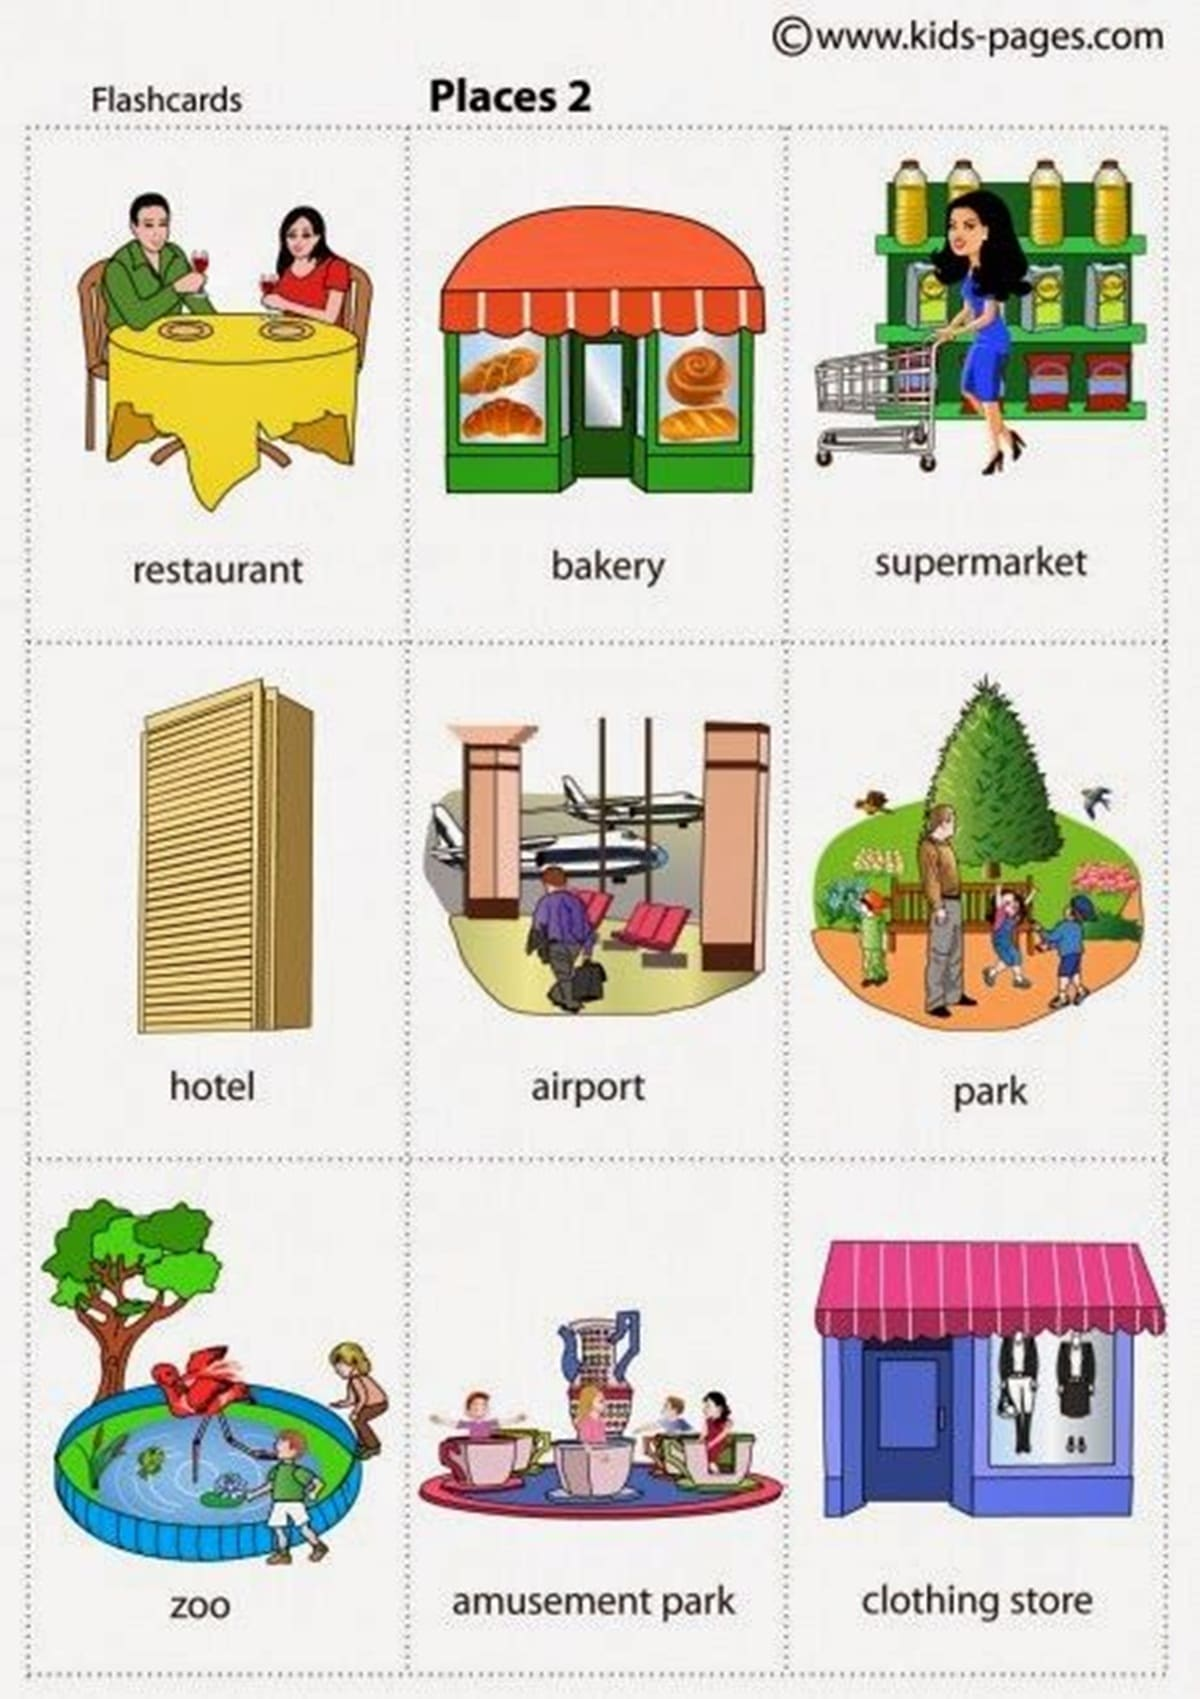 Learn English Vocabulary: Places in the City 2